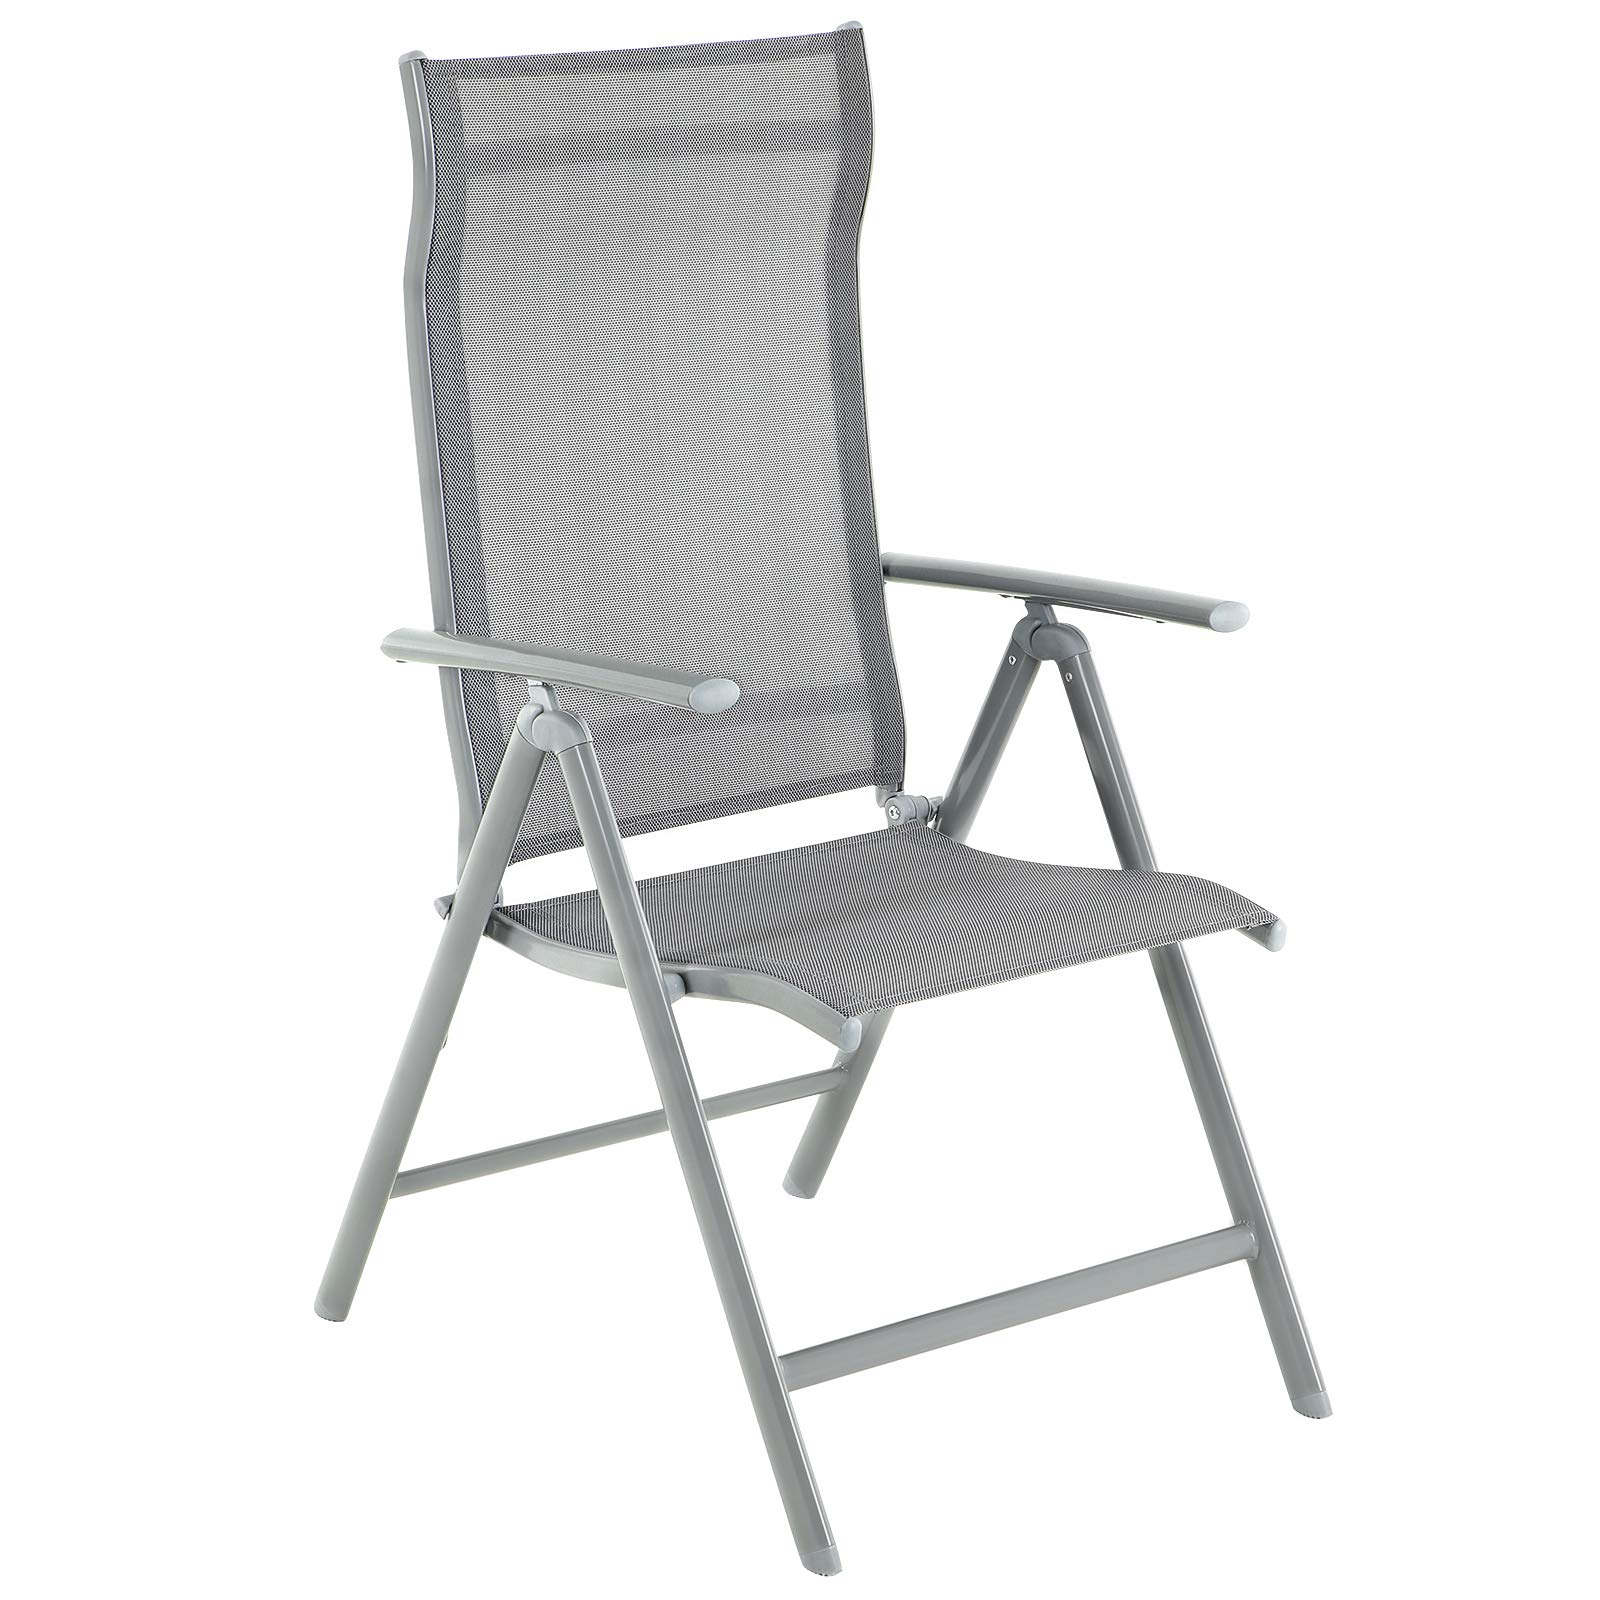 SONGMICS Folding Garden Chair, Outdoor Chair with Durable Aluminum  Structure, 8-Angle Reclining Backrest, Max. Capacity 8 kg, Grey GCB8GY